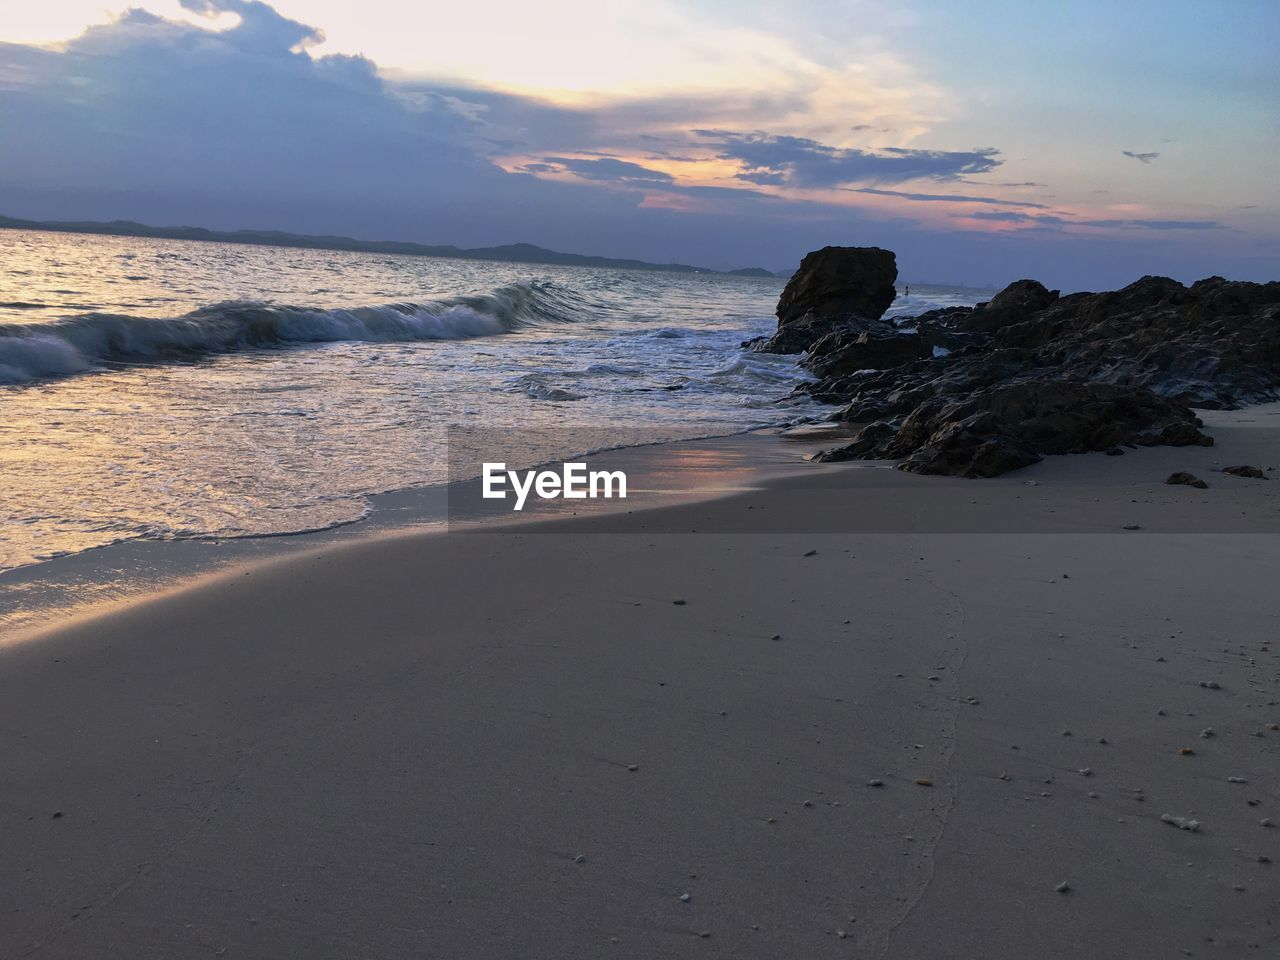 sea, water, beach, land, sky, beauty in nature, scenics - nature, sunset, sand, rock, tranquility, rock - object, horizon over water, motion, solid, horizon, nature, cloud - sky, tranquil scene, no people, outdoors